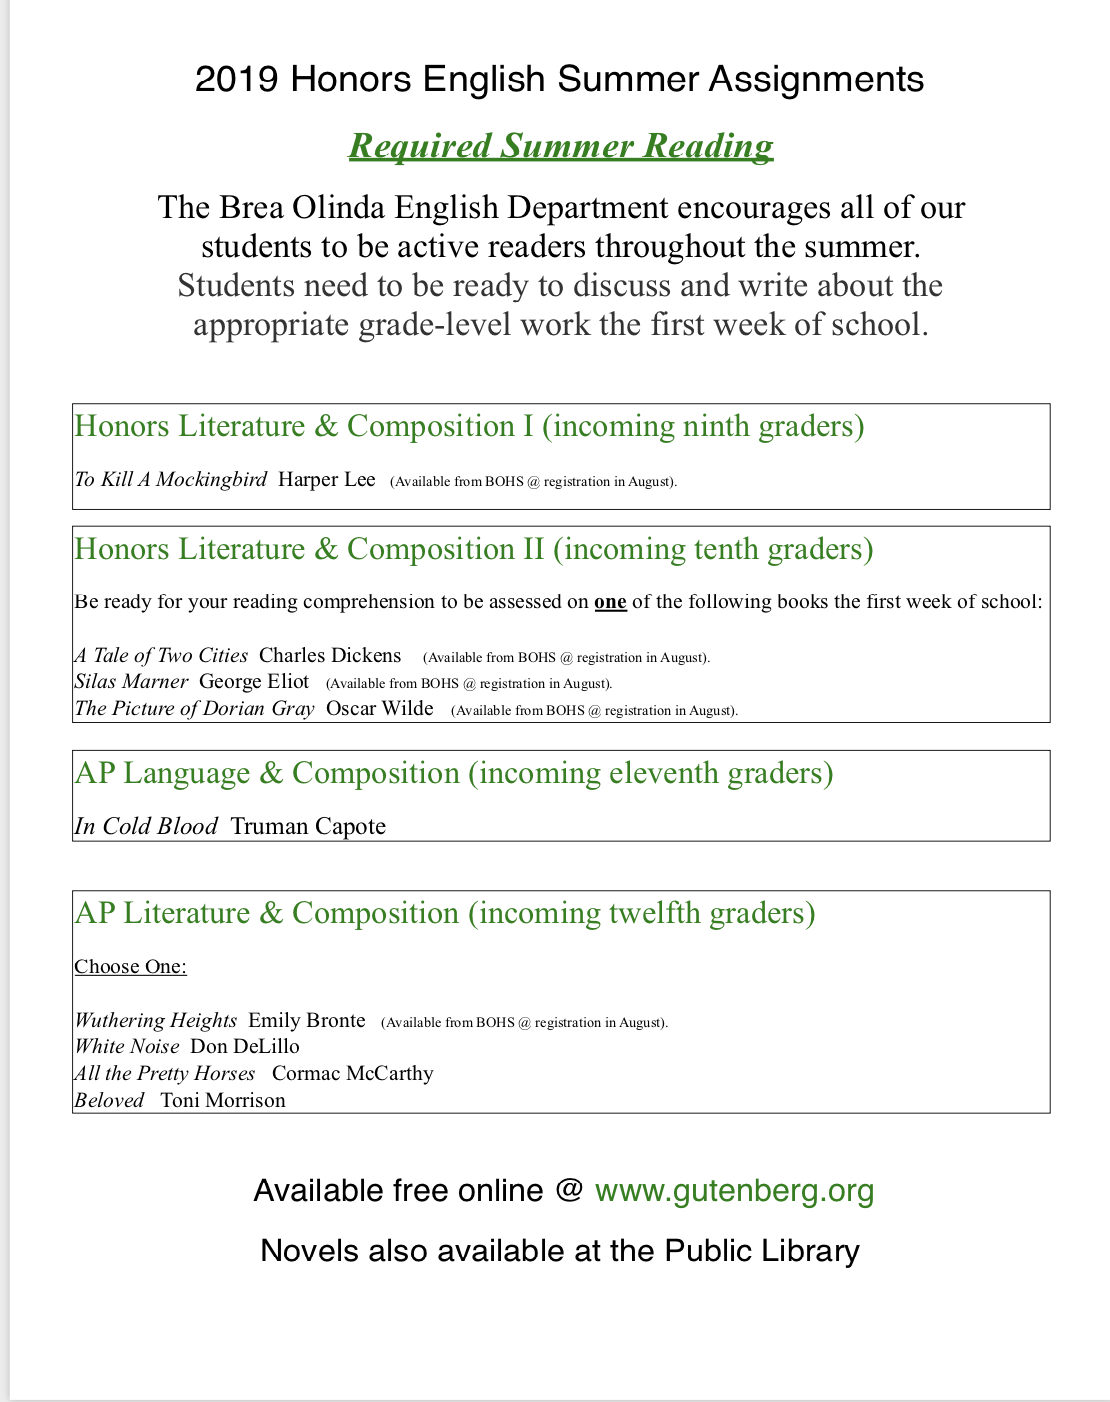 2019 Honors English Summer Assignments